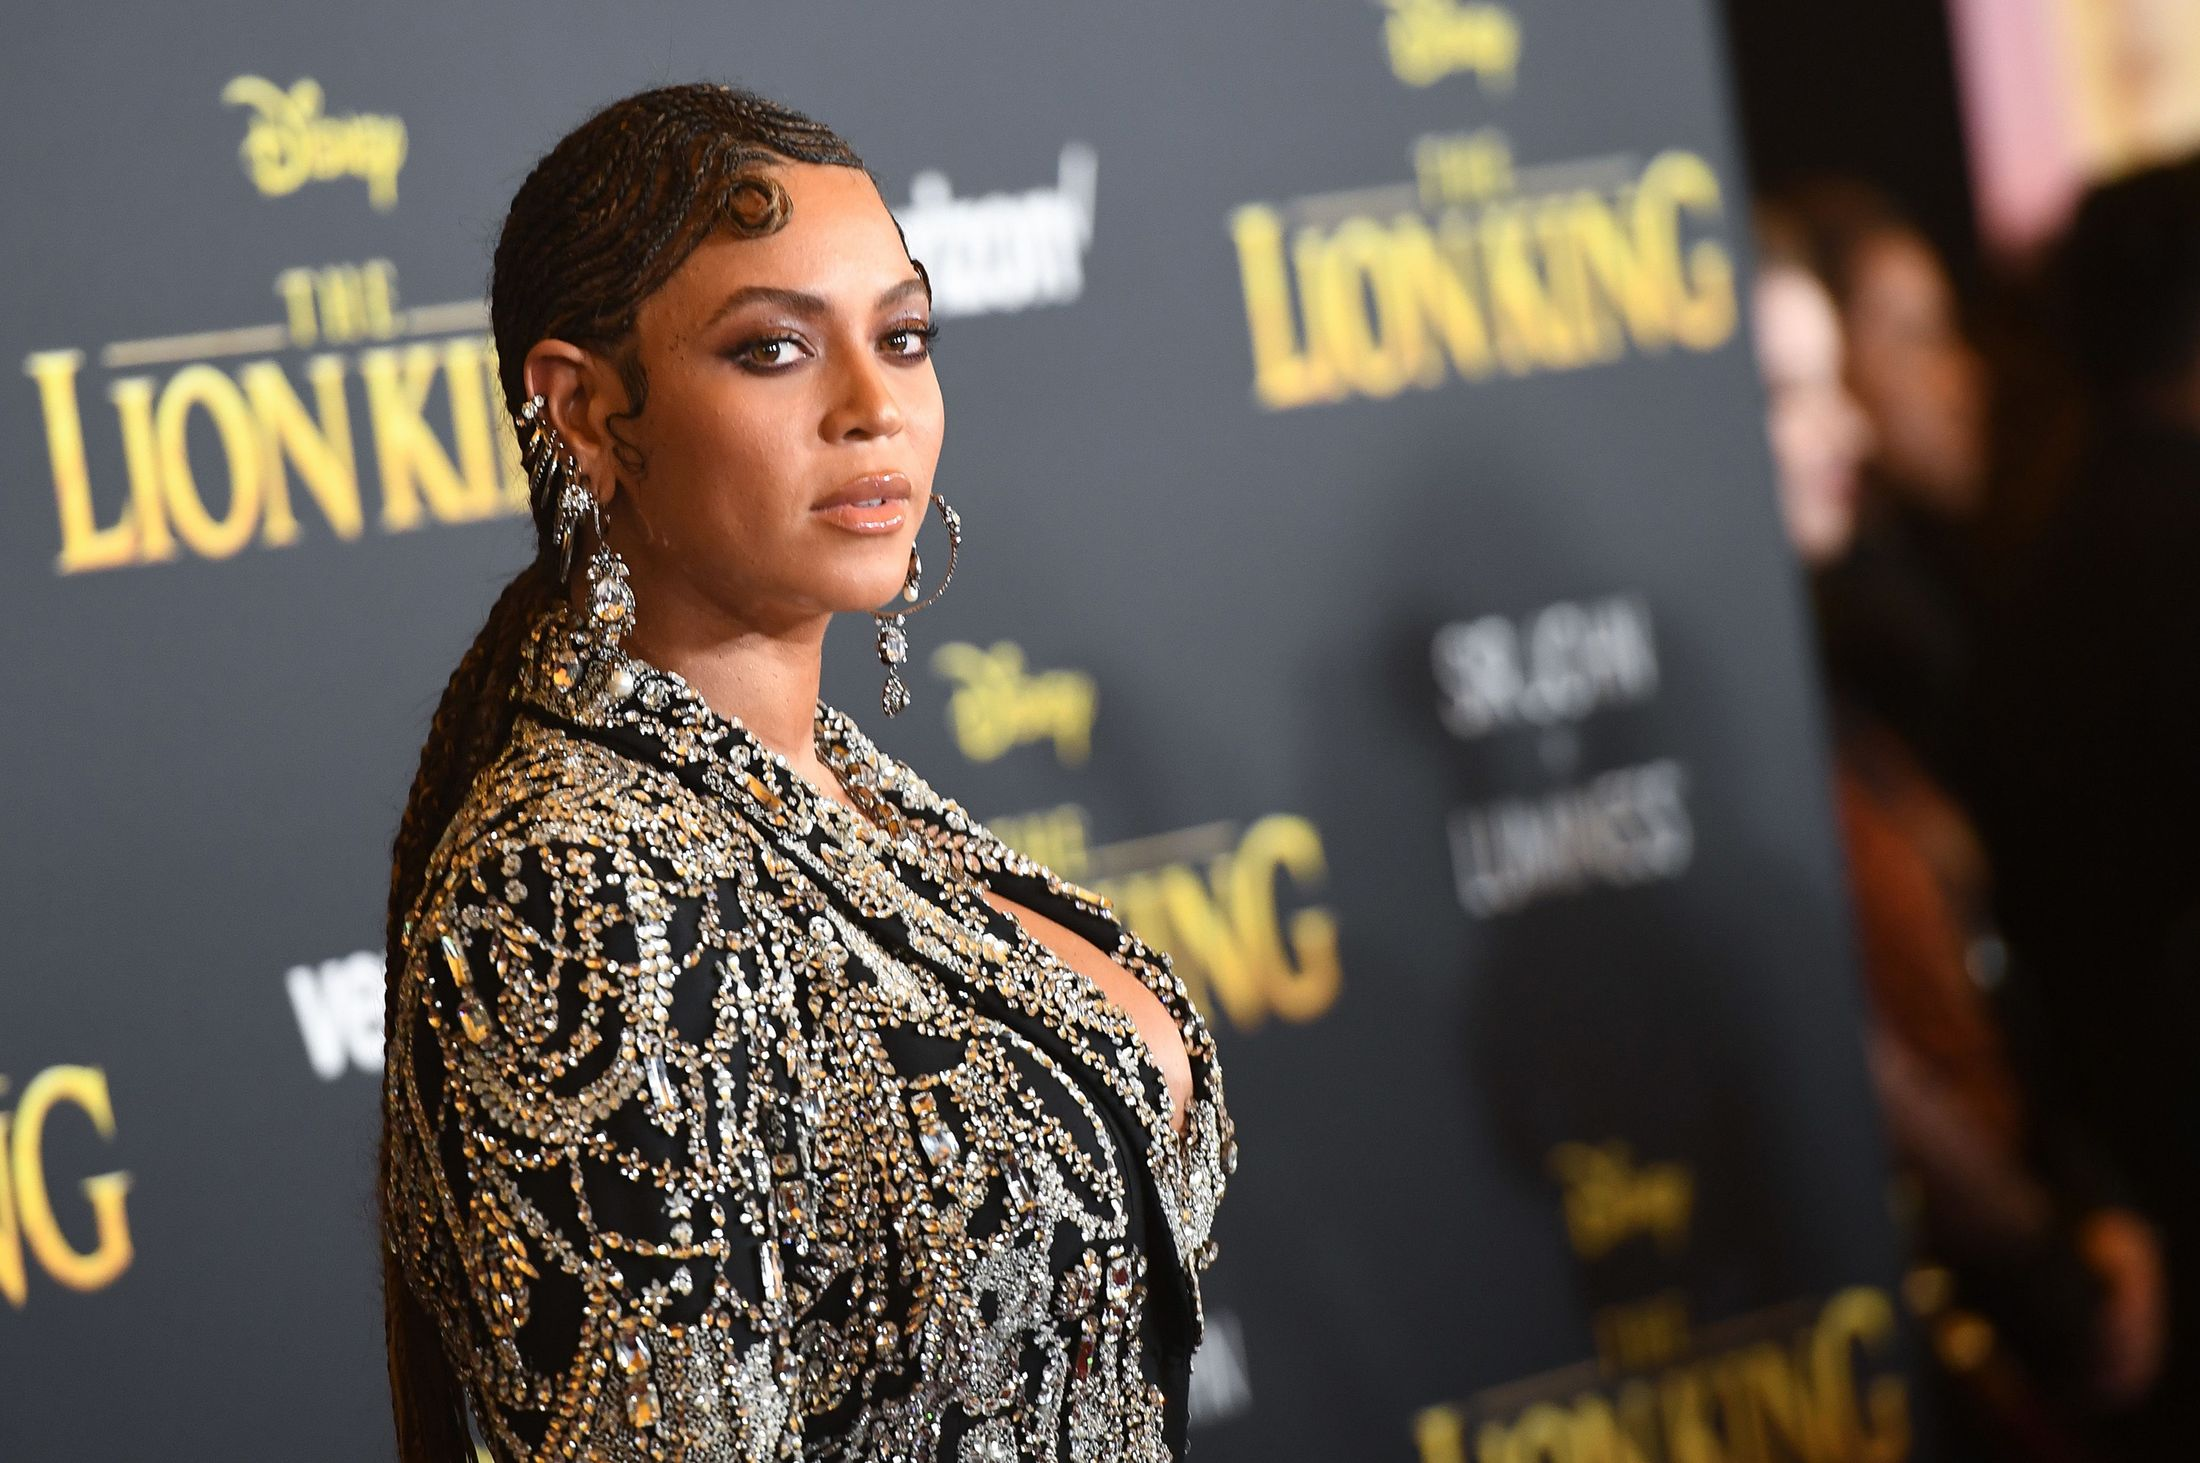 Beyonce at The Lion King premiere in Hollywood.